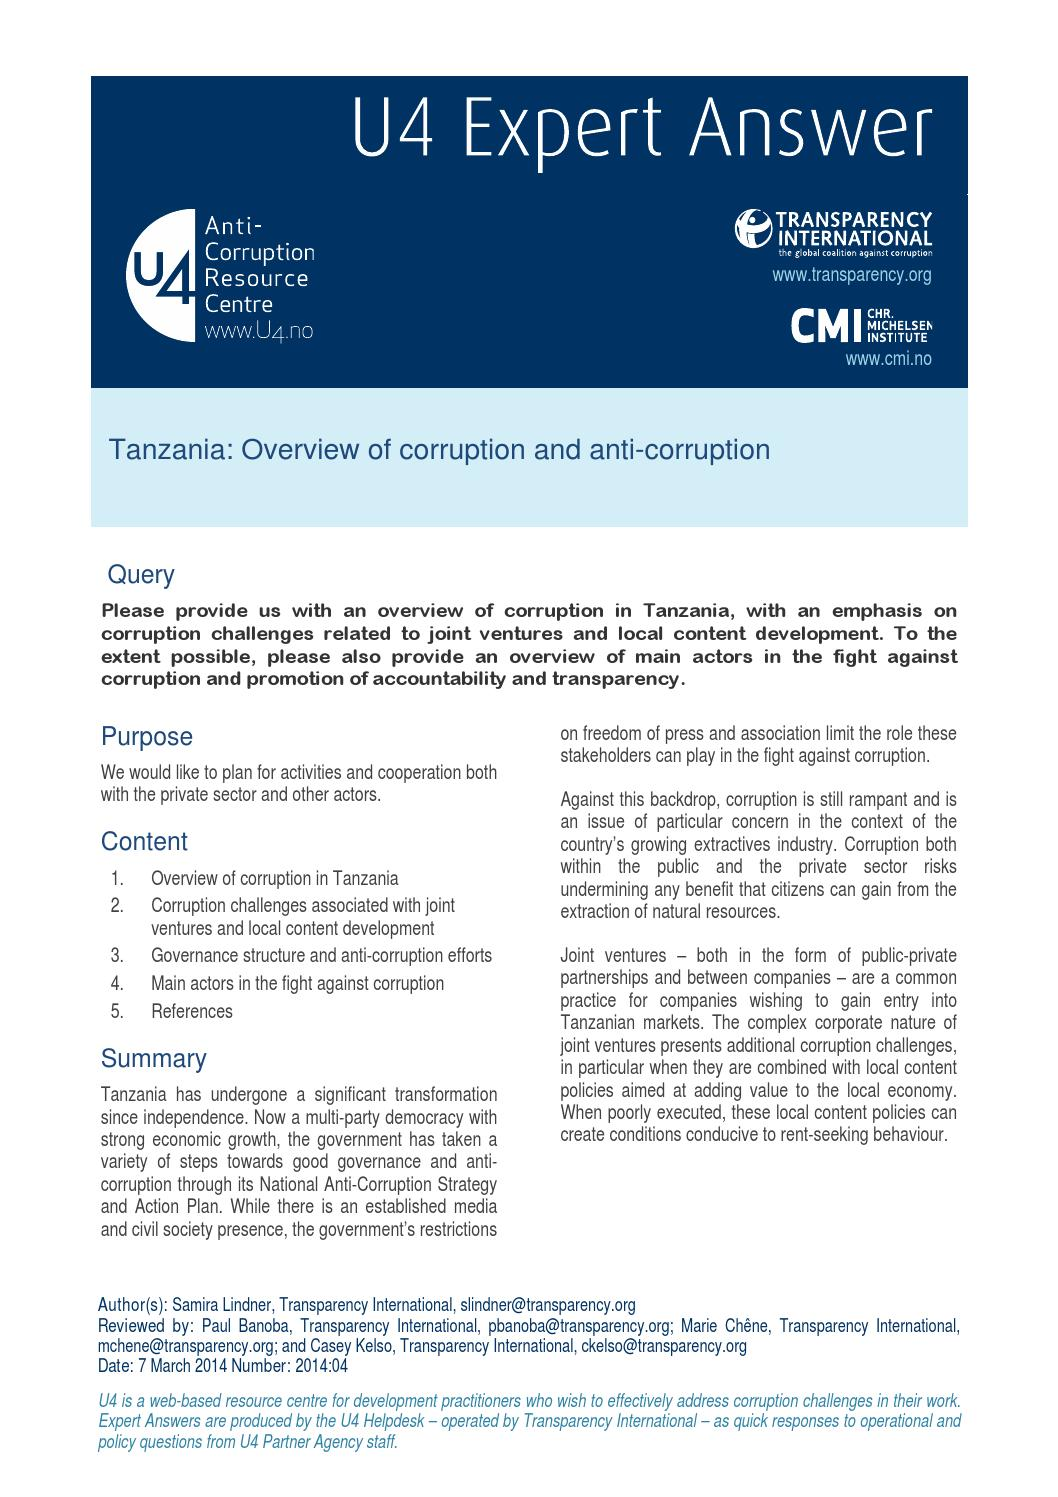 Tanzania: Overview of corruption and anti-corruption by CMI